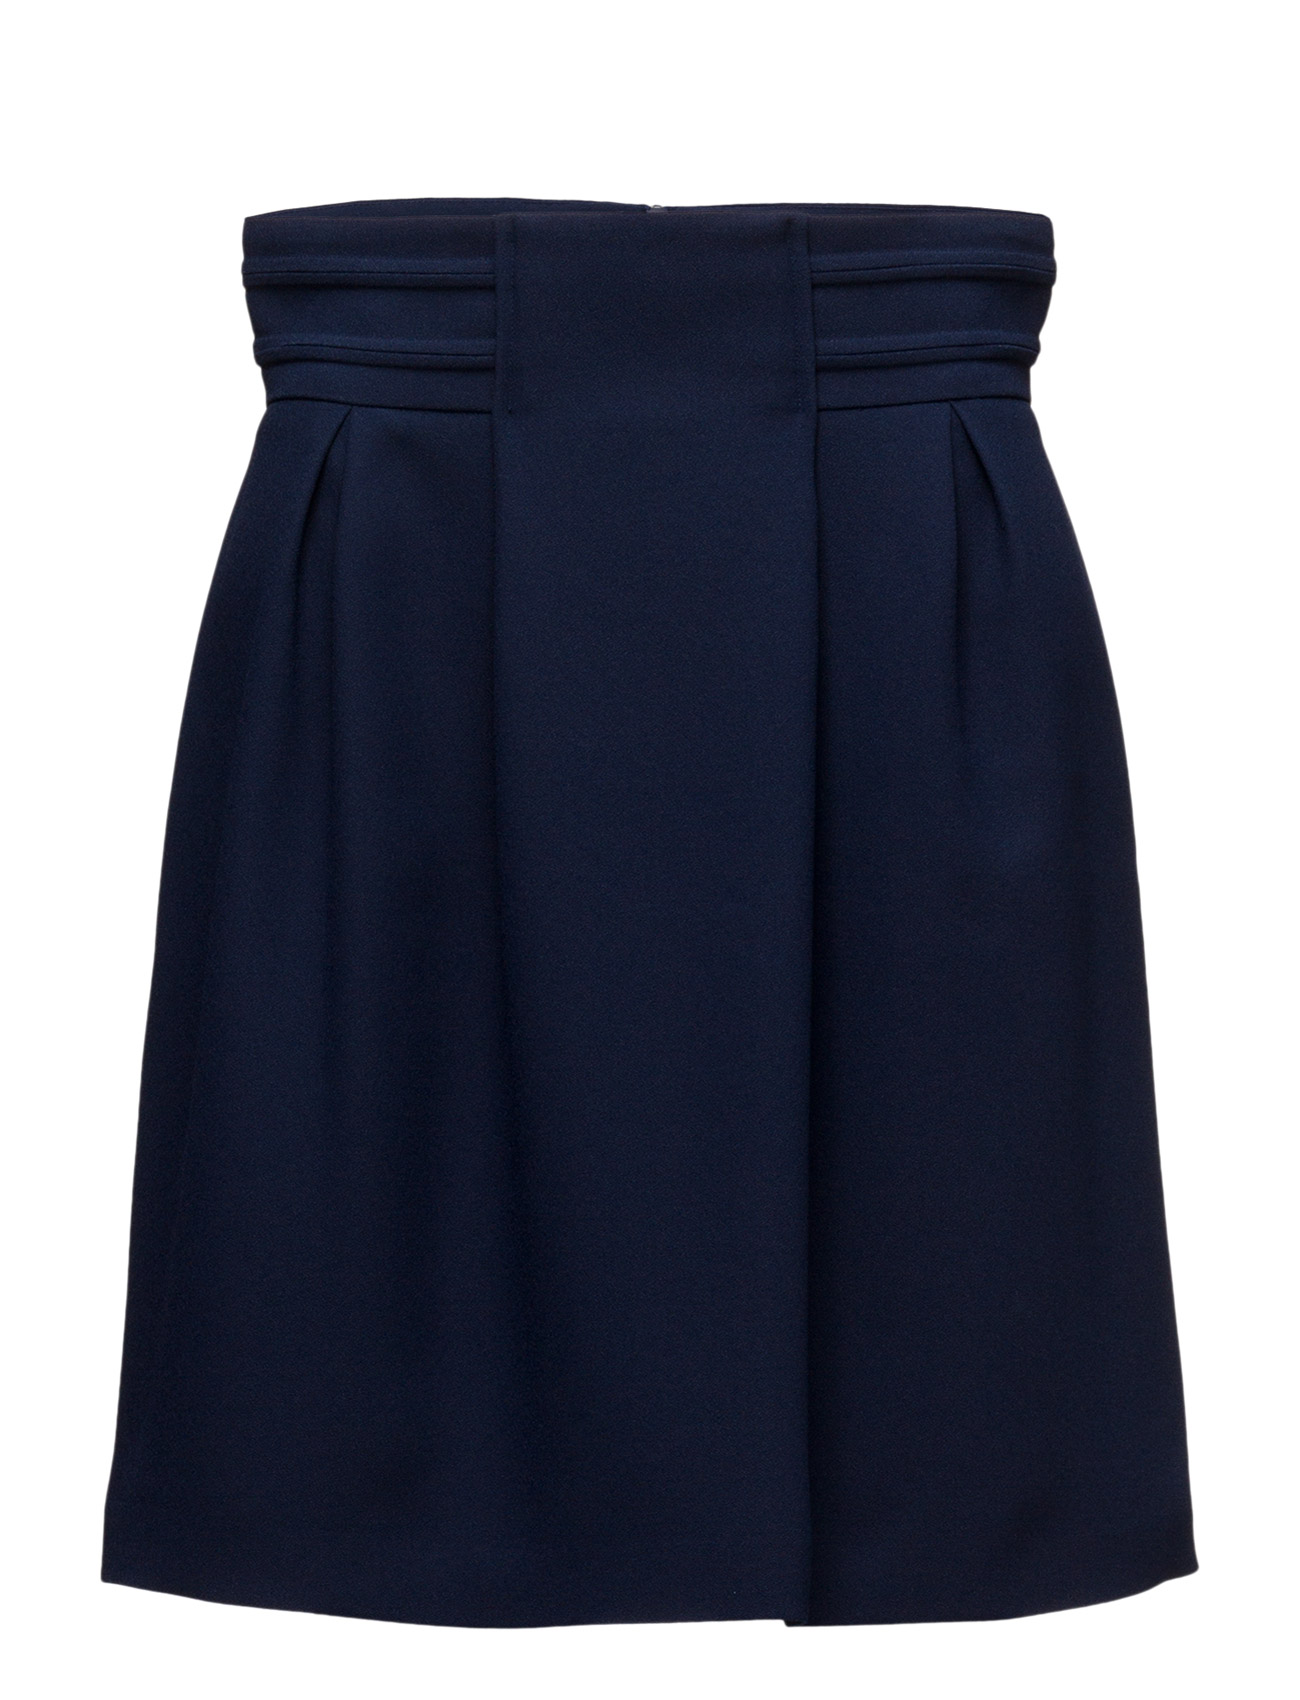 Esprit Collection Skirts Light Woven 186167137